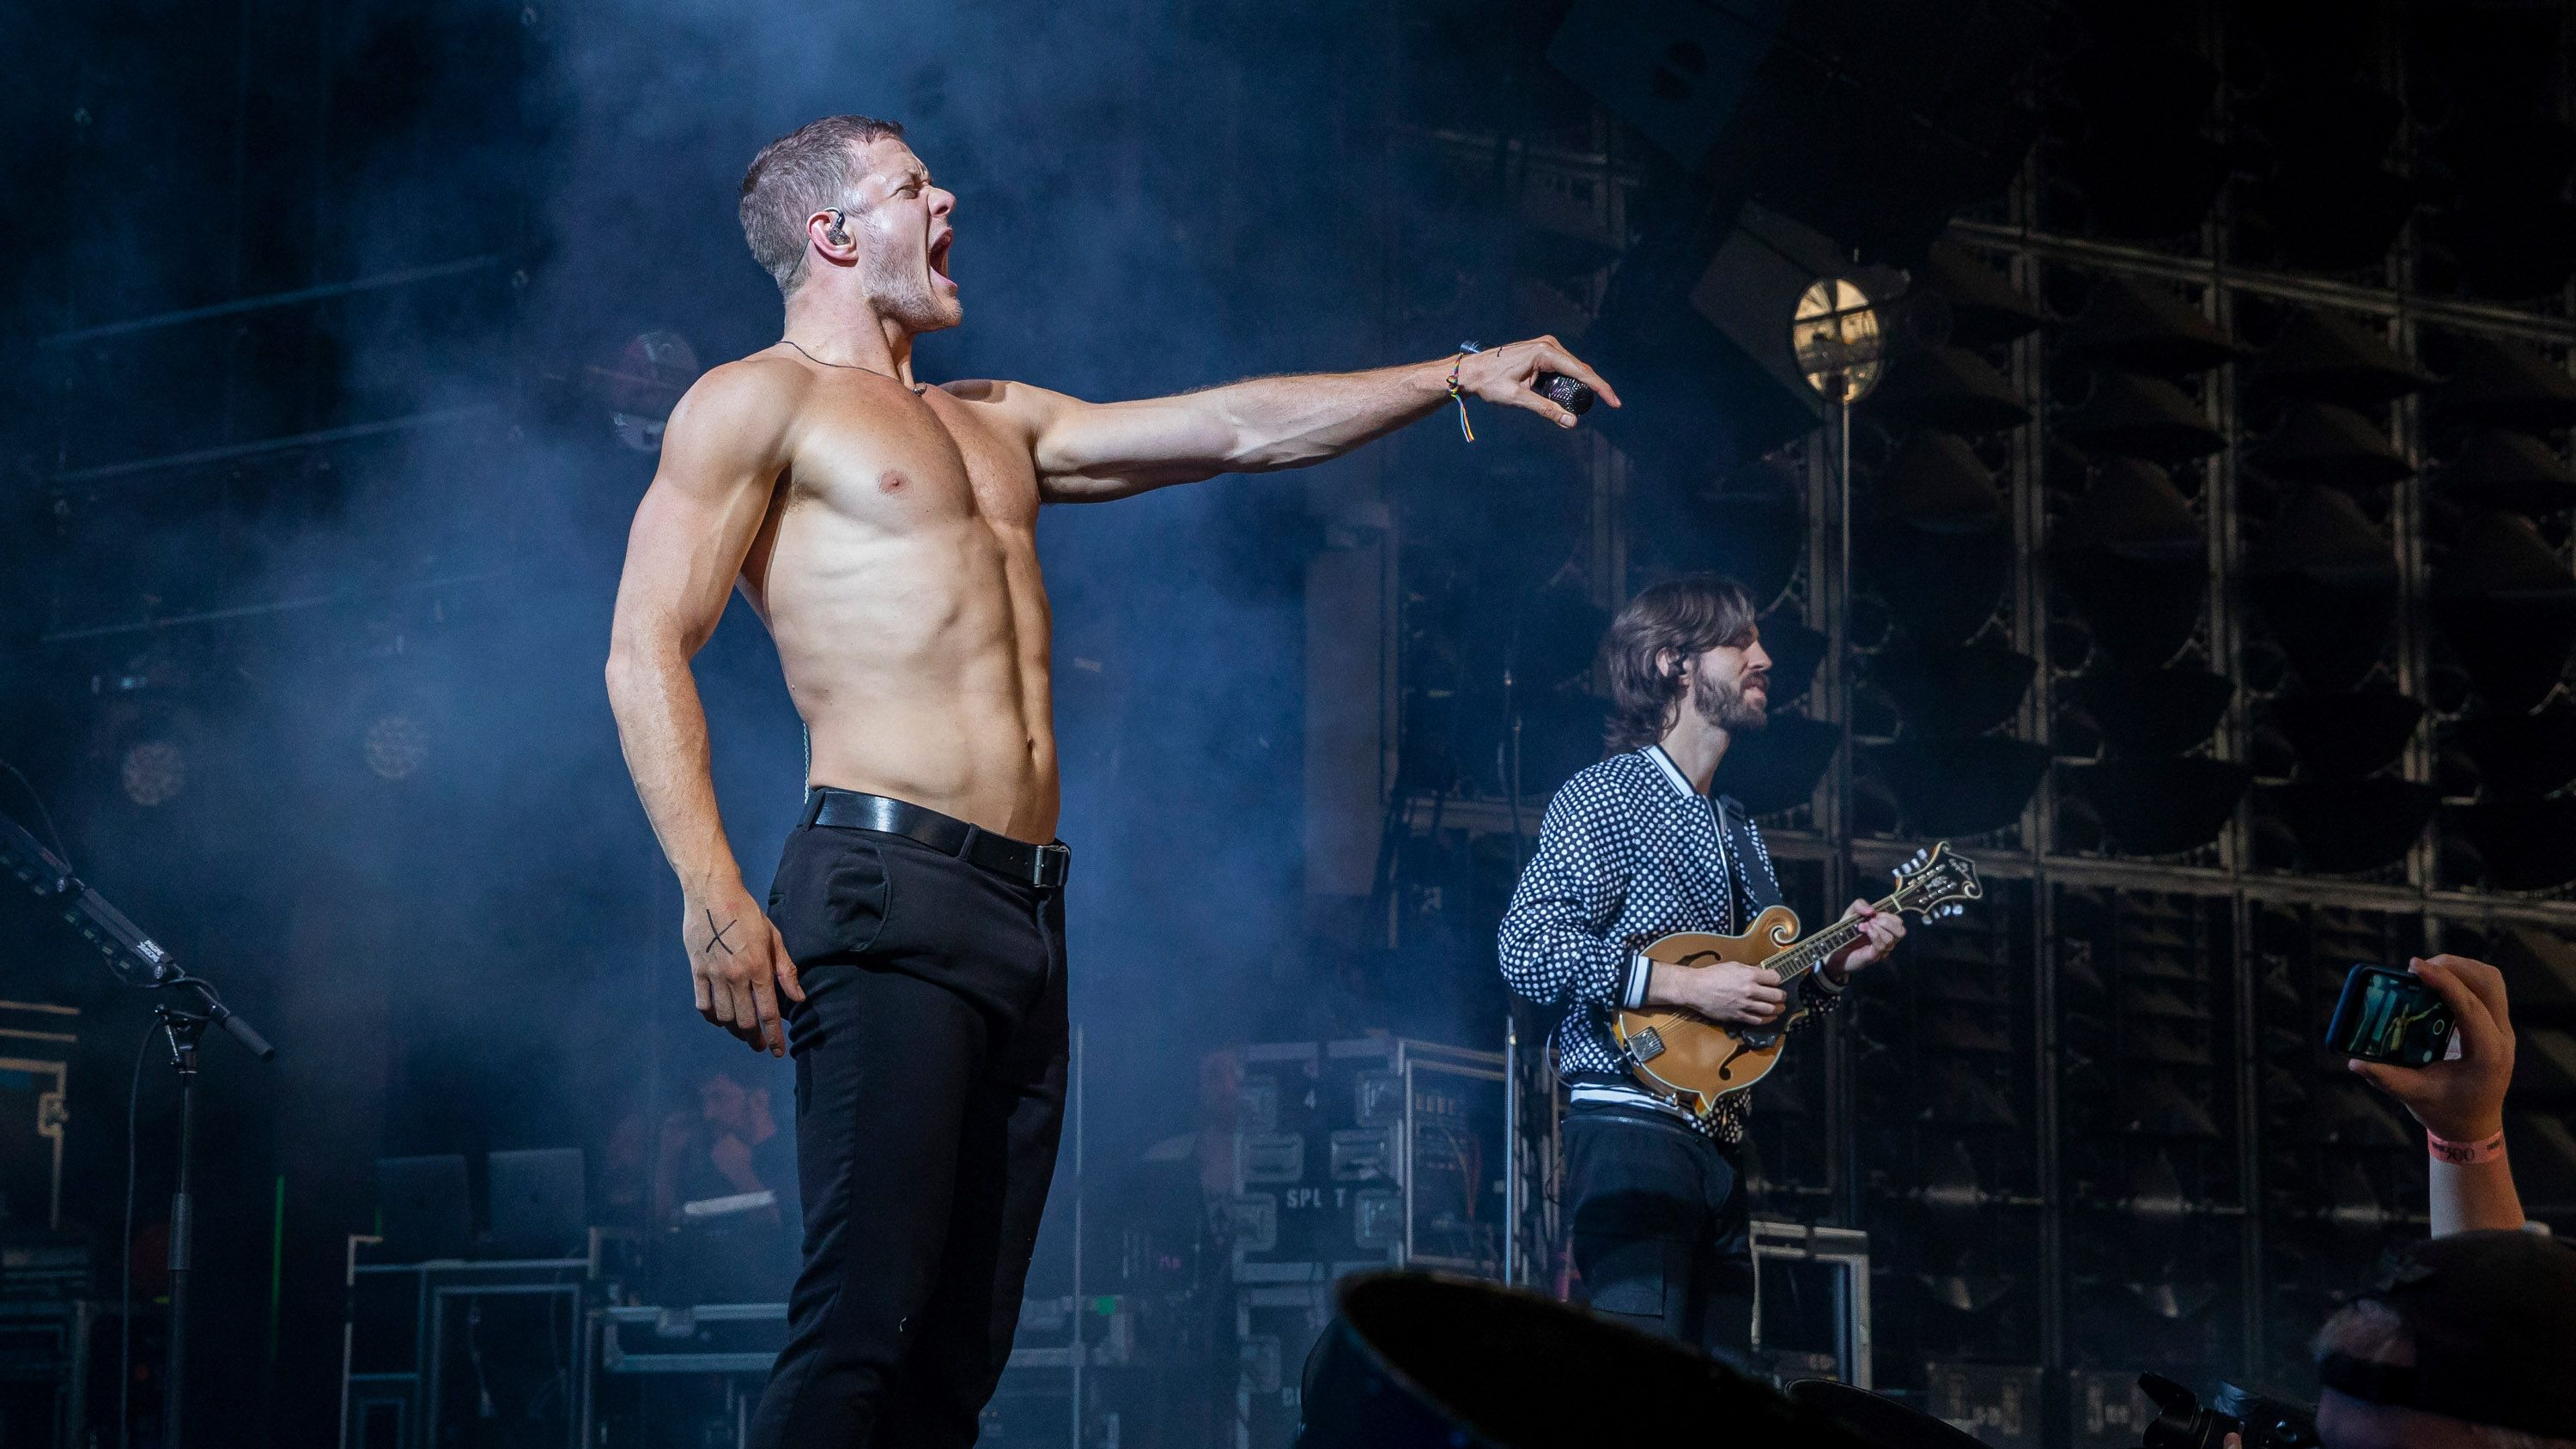 Imagine Dragons' Dan Reynolds Completely Transformed His Body in Just Months